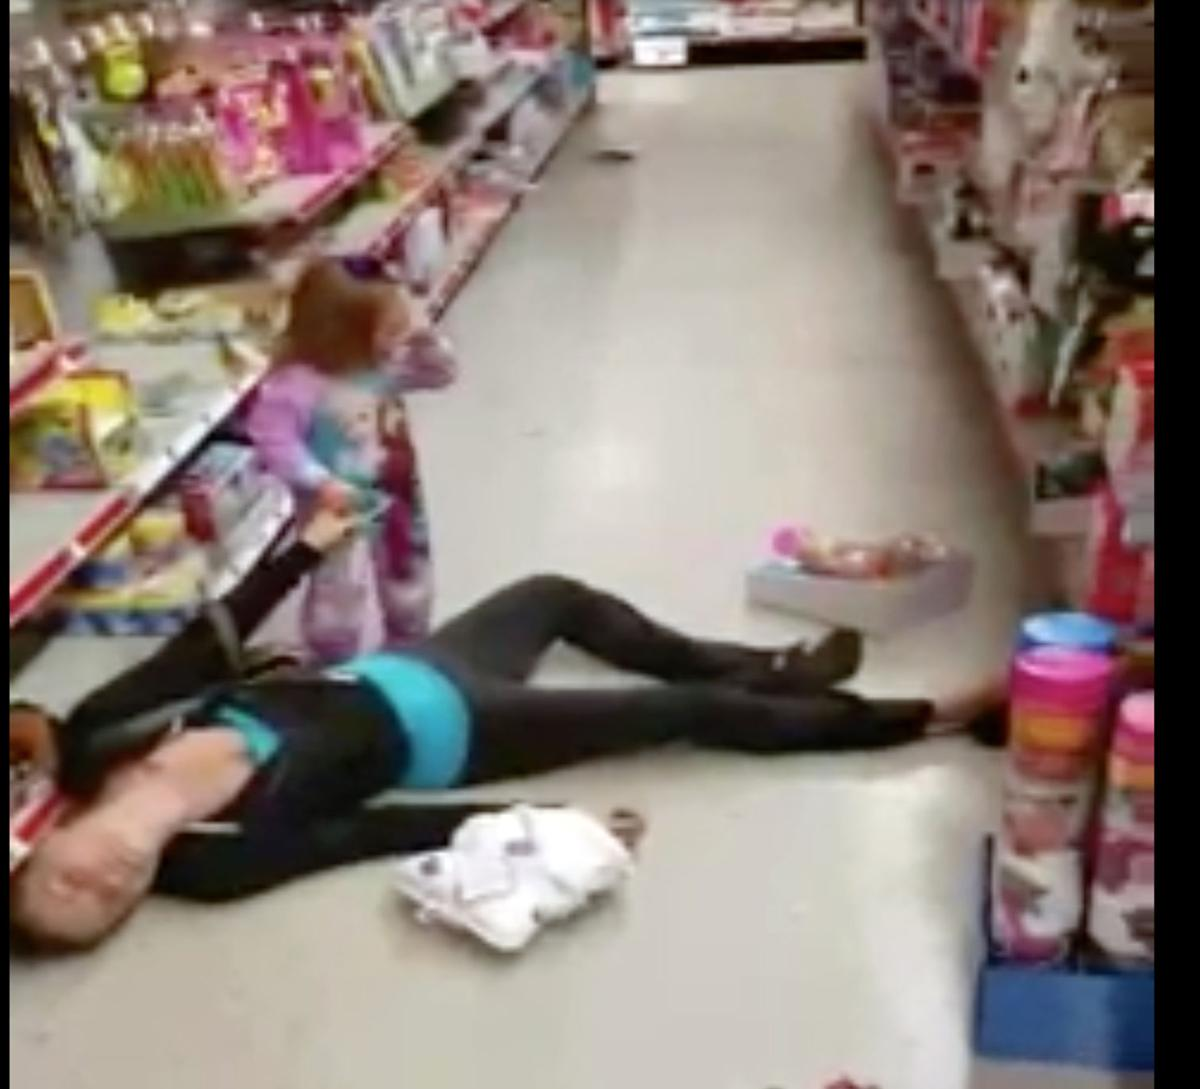 Mom who overdosed in Mass. store with toddler by her side to face endangerment charge